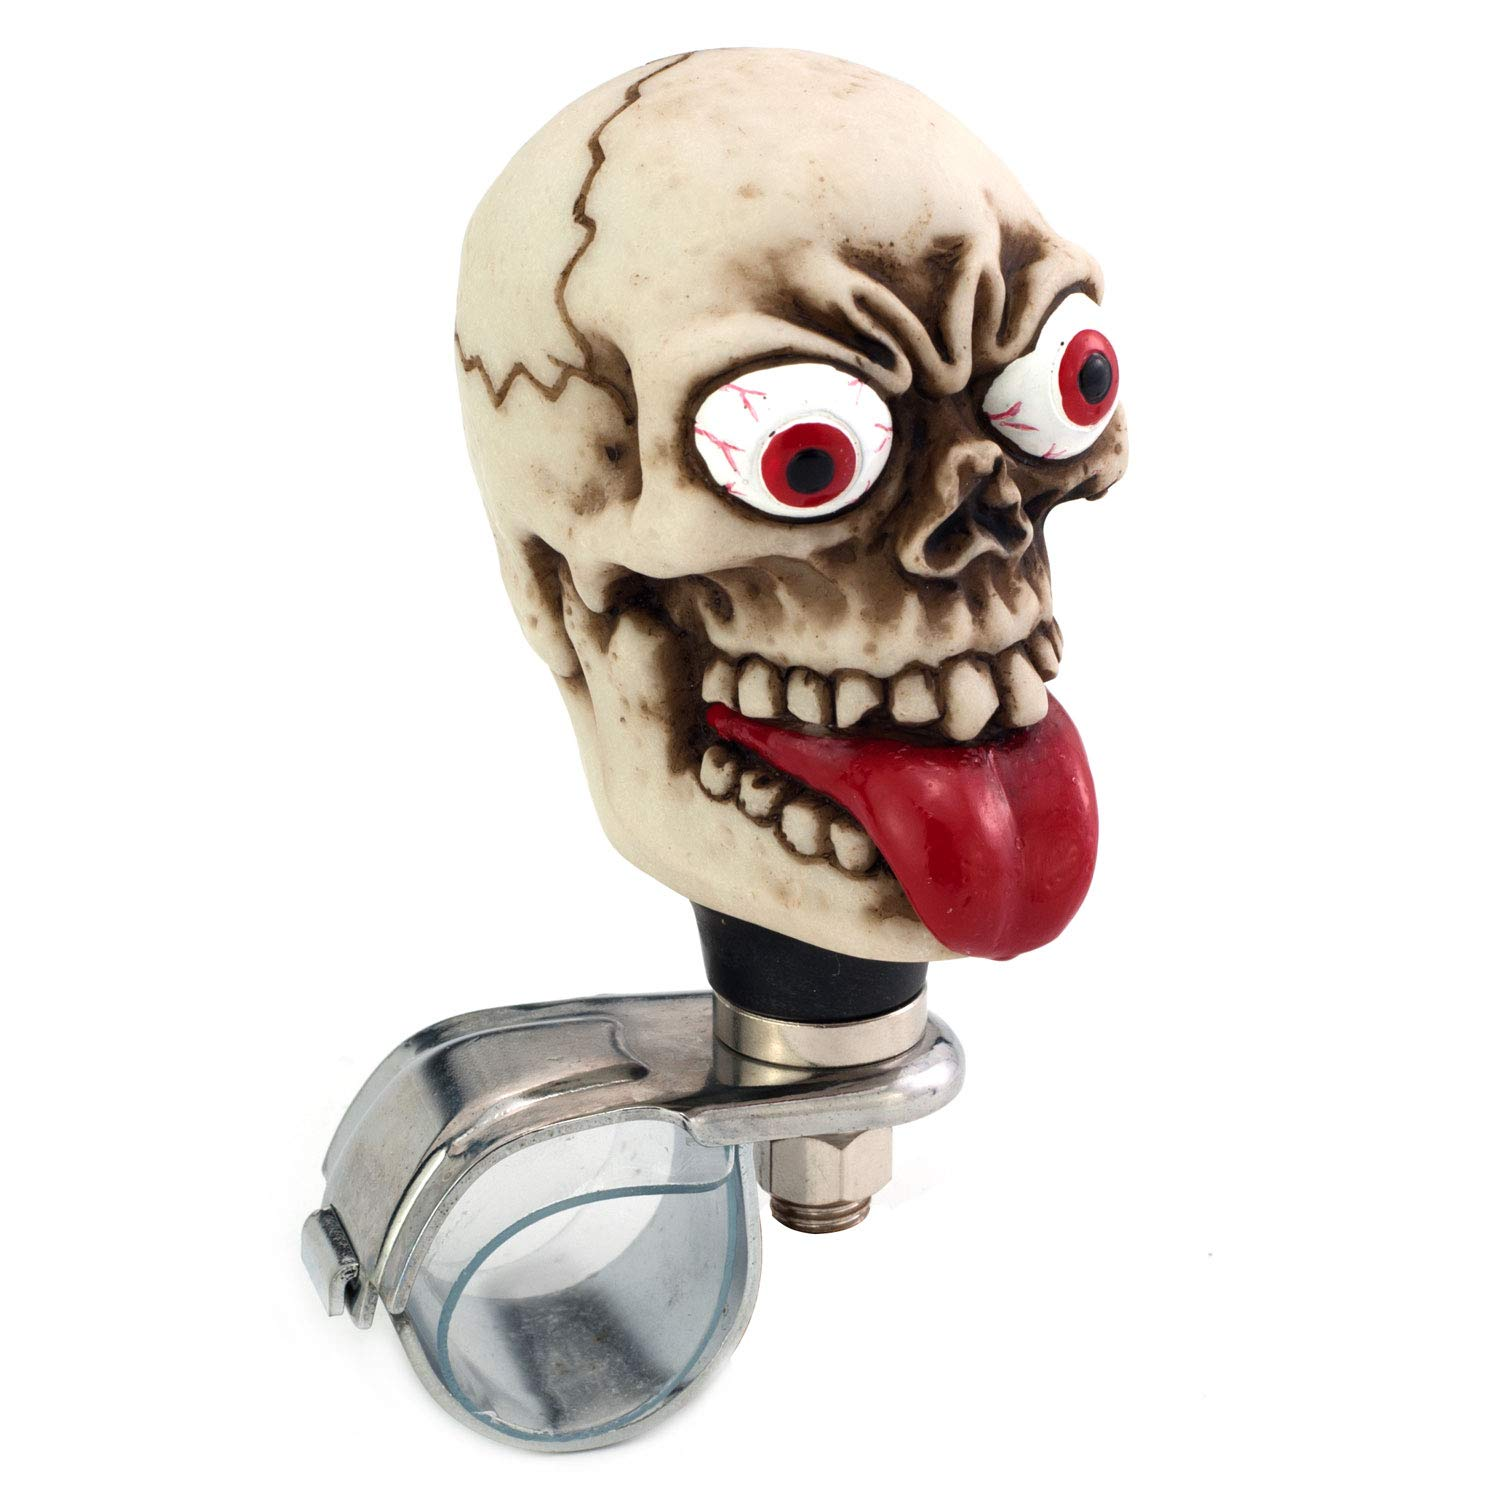 Funny Grimace Style Car Power Handle Grip Knobs Fit Most Manual Automatic Vehicles Thruifo Skull Steering Wheel Spinner Suicide Knob